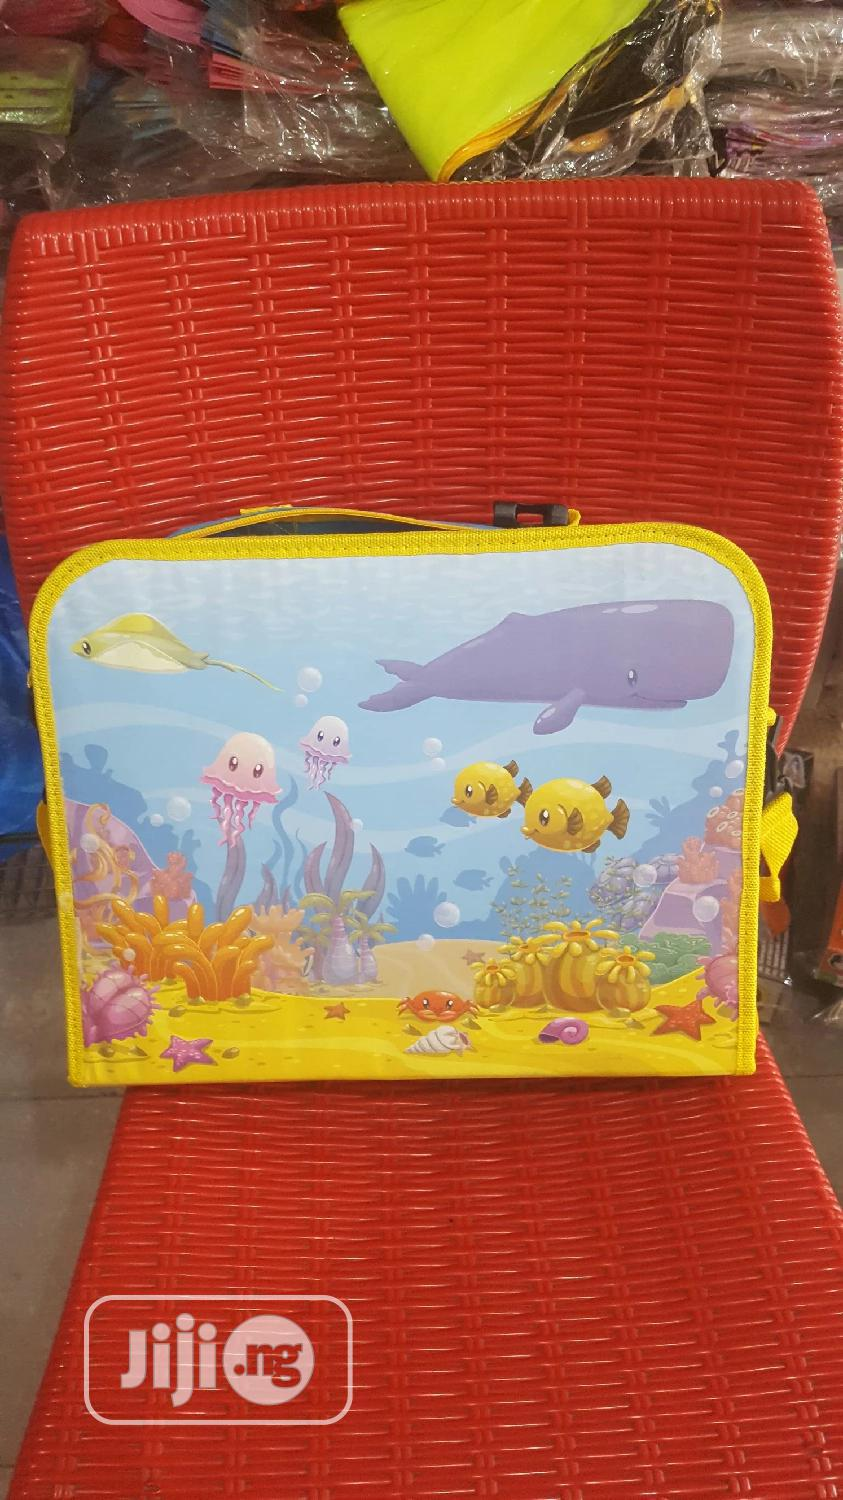 Travel Activity Set | Babies & Kids Accessories for sale in Ikeja, Lagos State, Nigeria